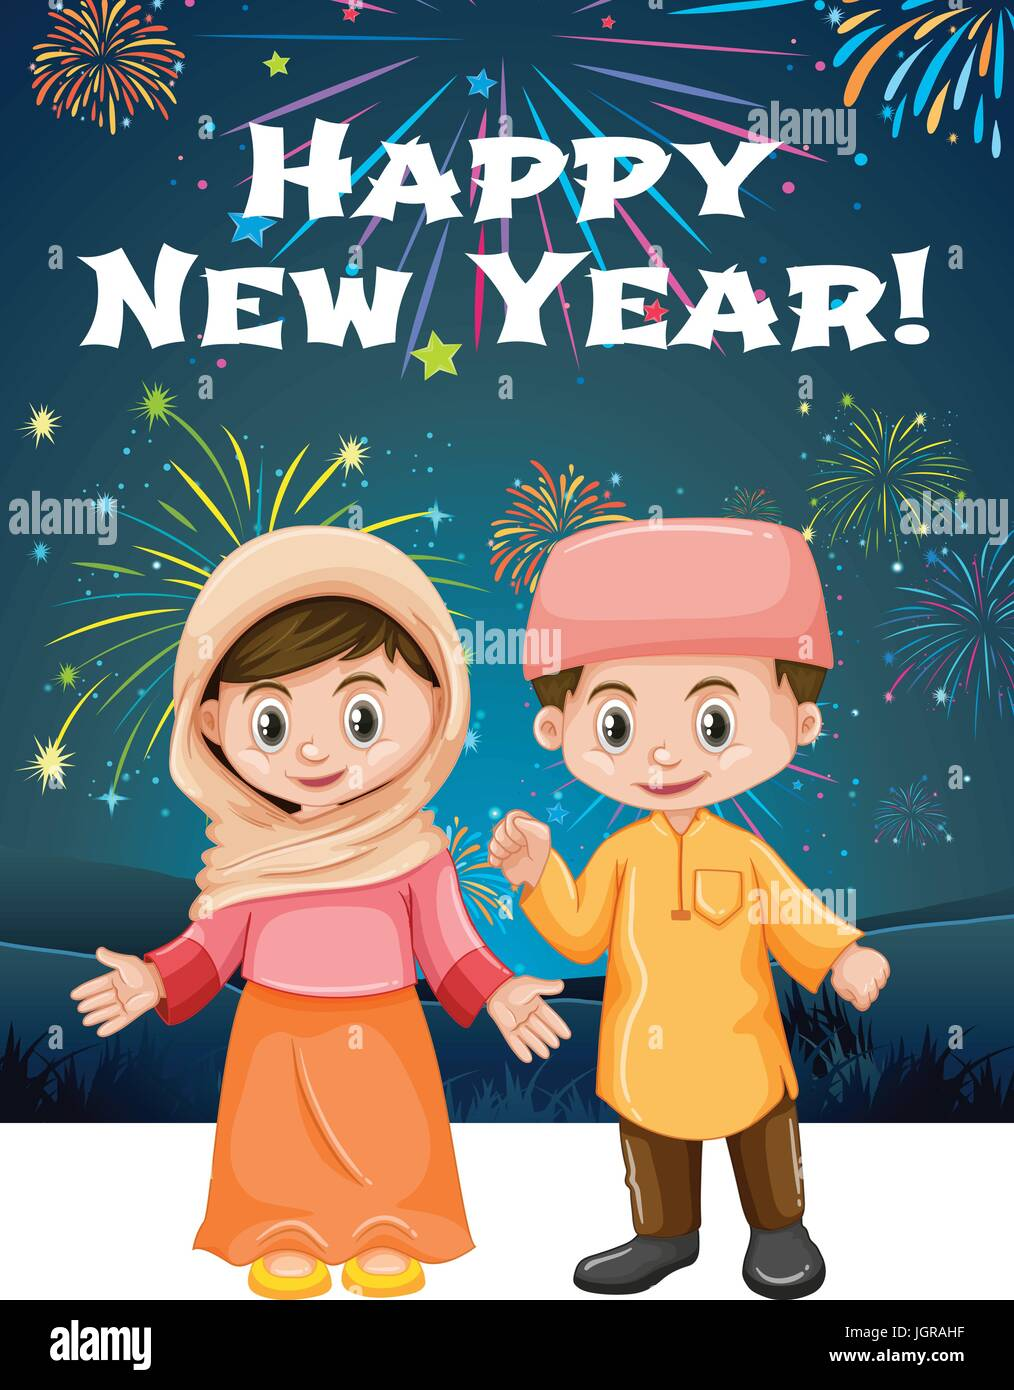 Happy New Year Card Template With Muslim Kids Illustration Stock